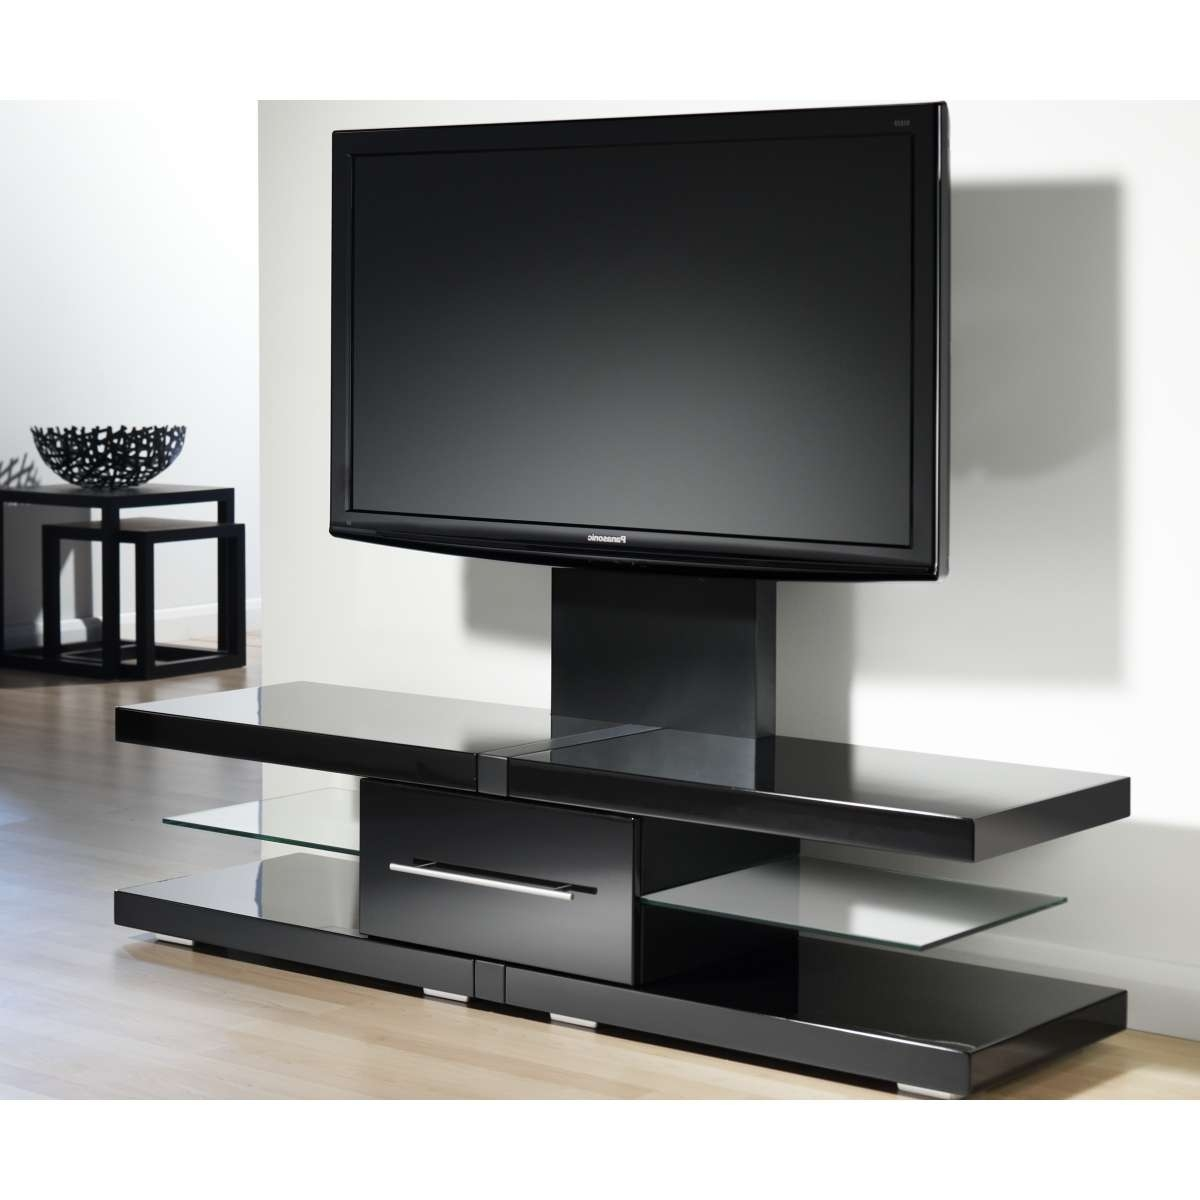 Modern Black Tone Wide Screen Tv Stand With Display Shelves And Within Wide Screen Tv Stands (Gallery 7 of 15)